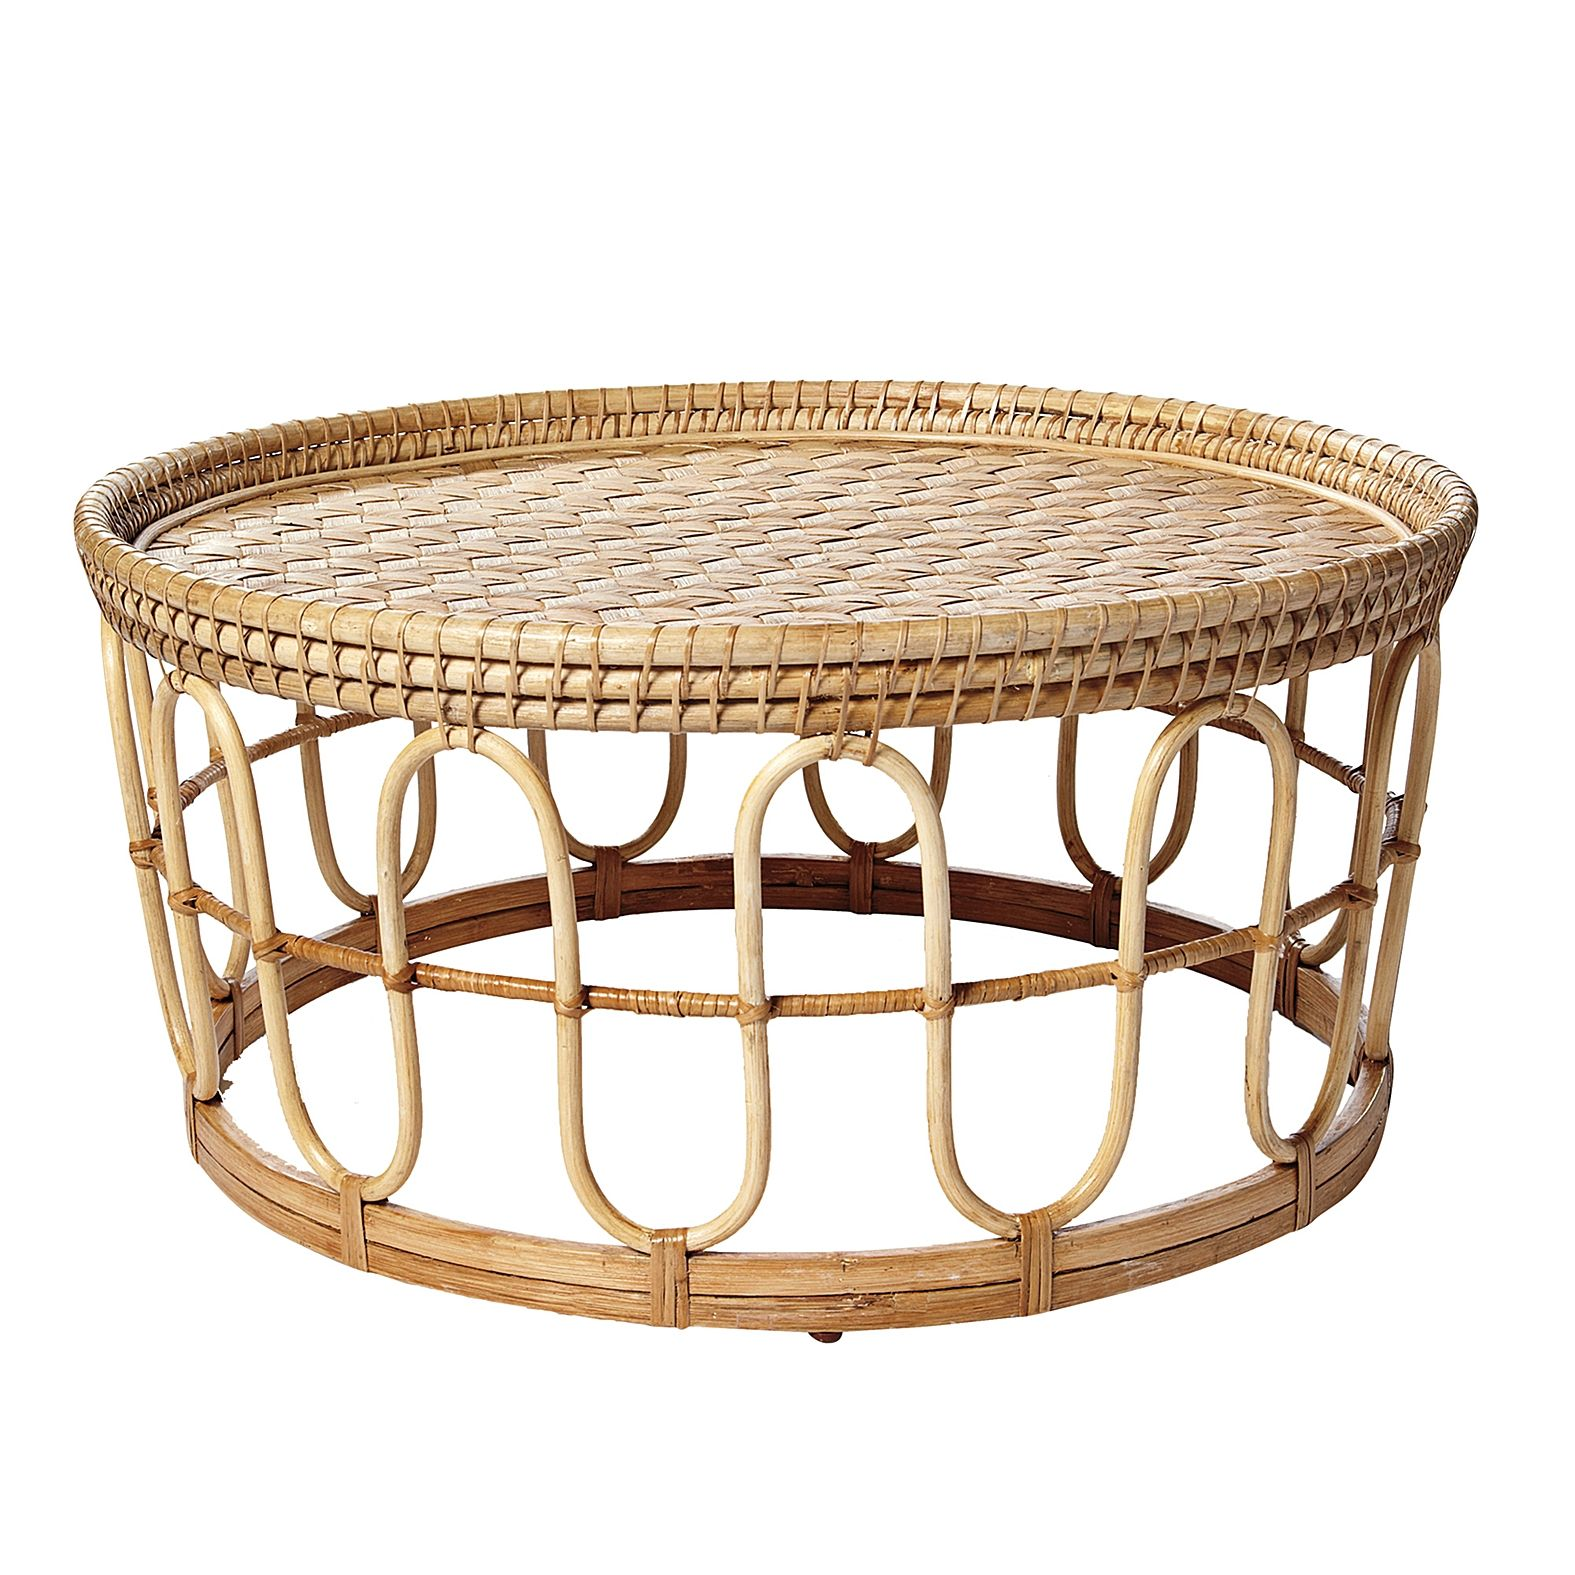 Banda Coffee Table Serena Lily Via Design Sponge Wicker